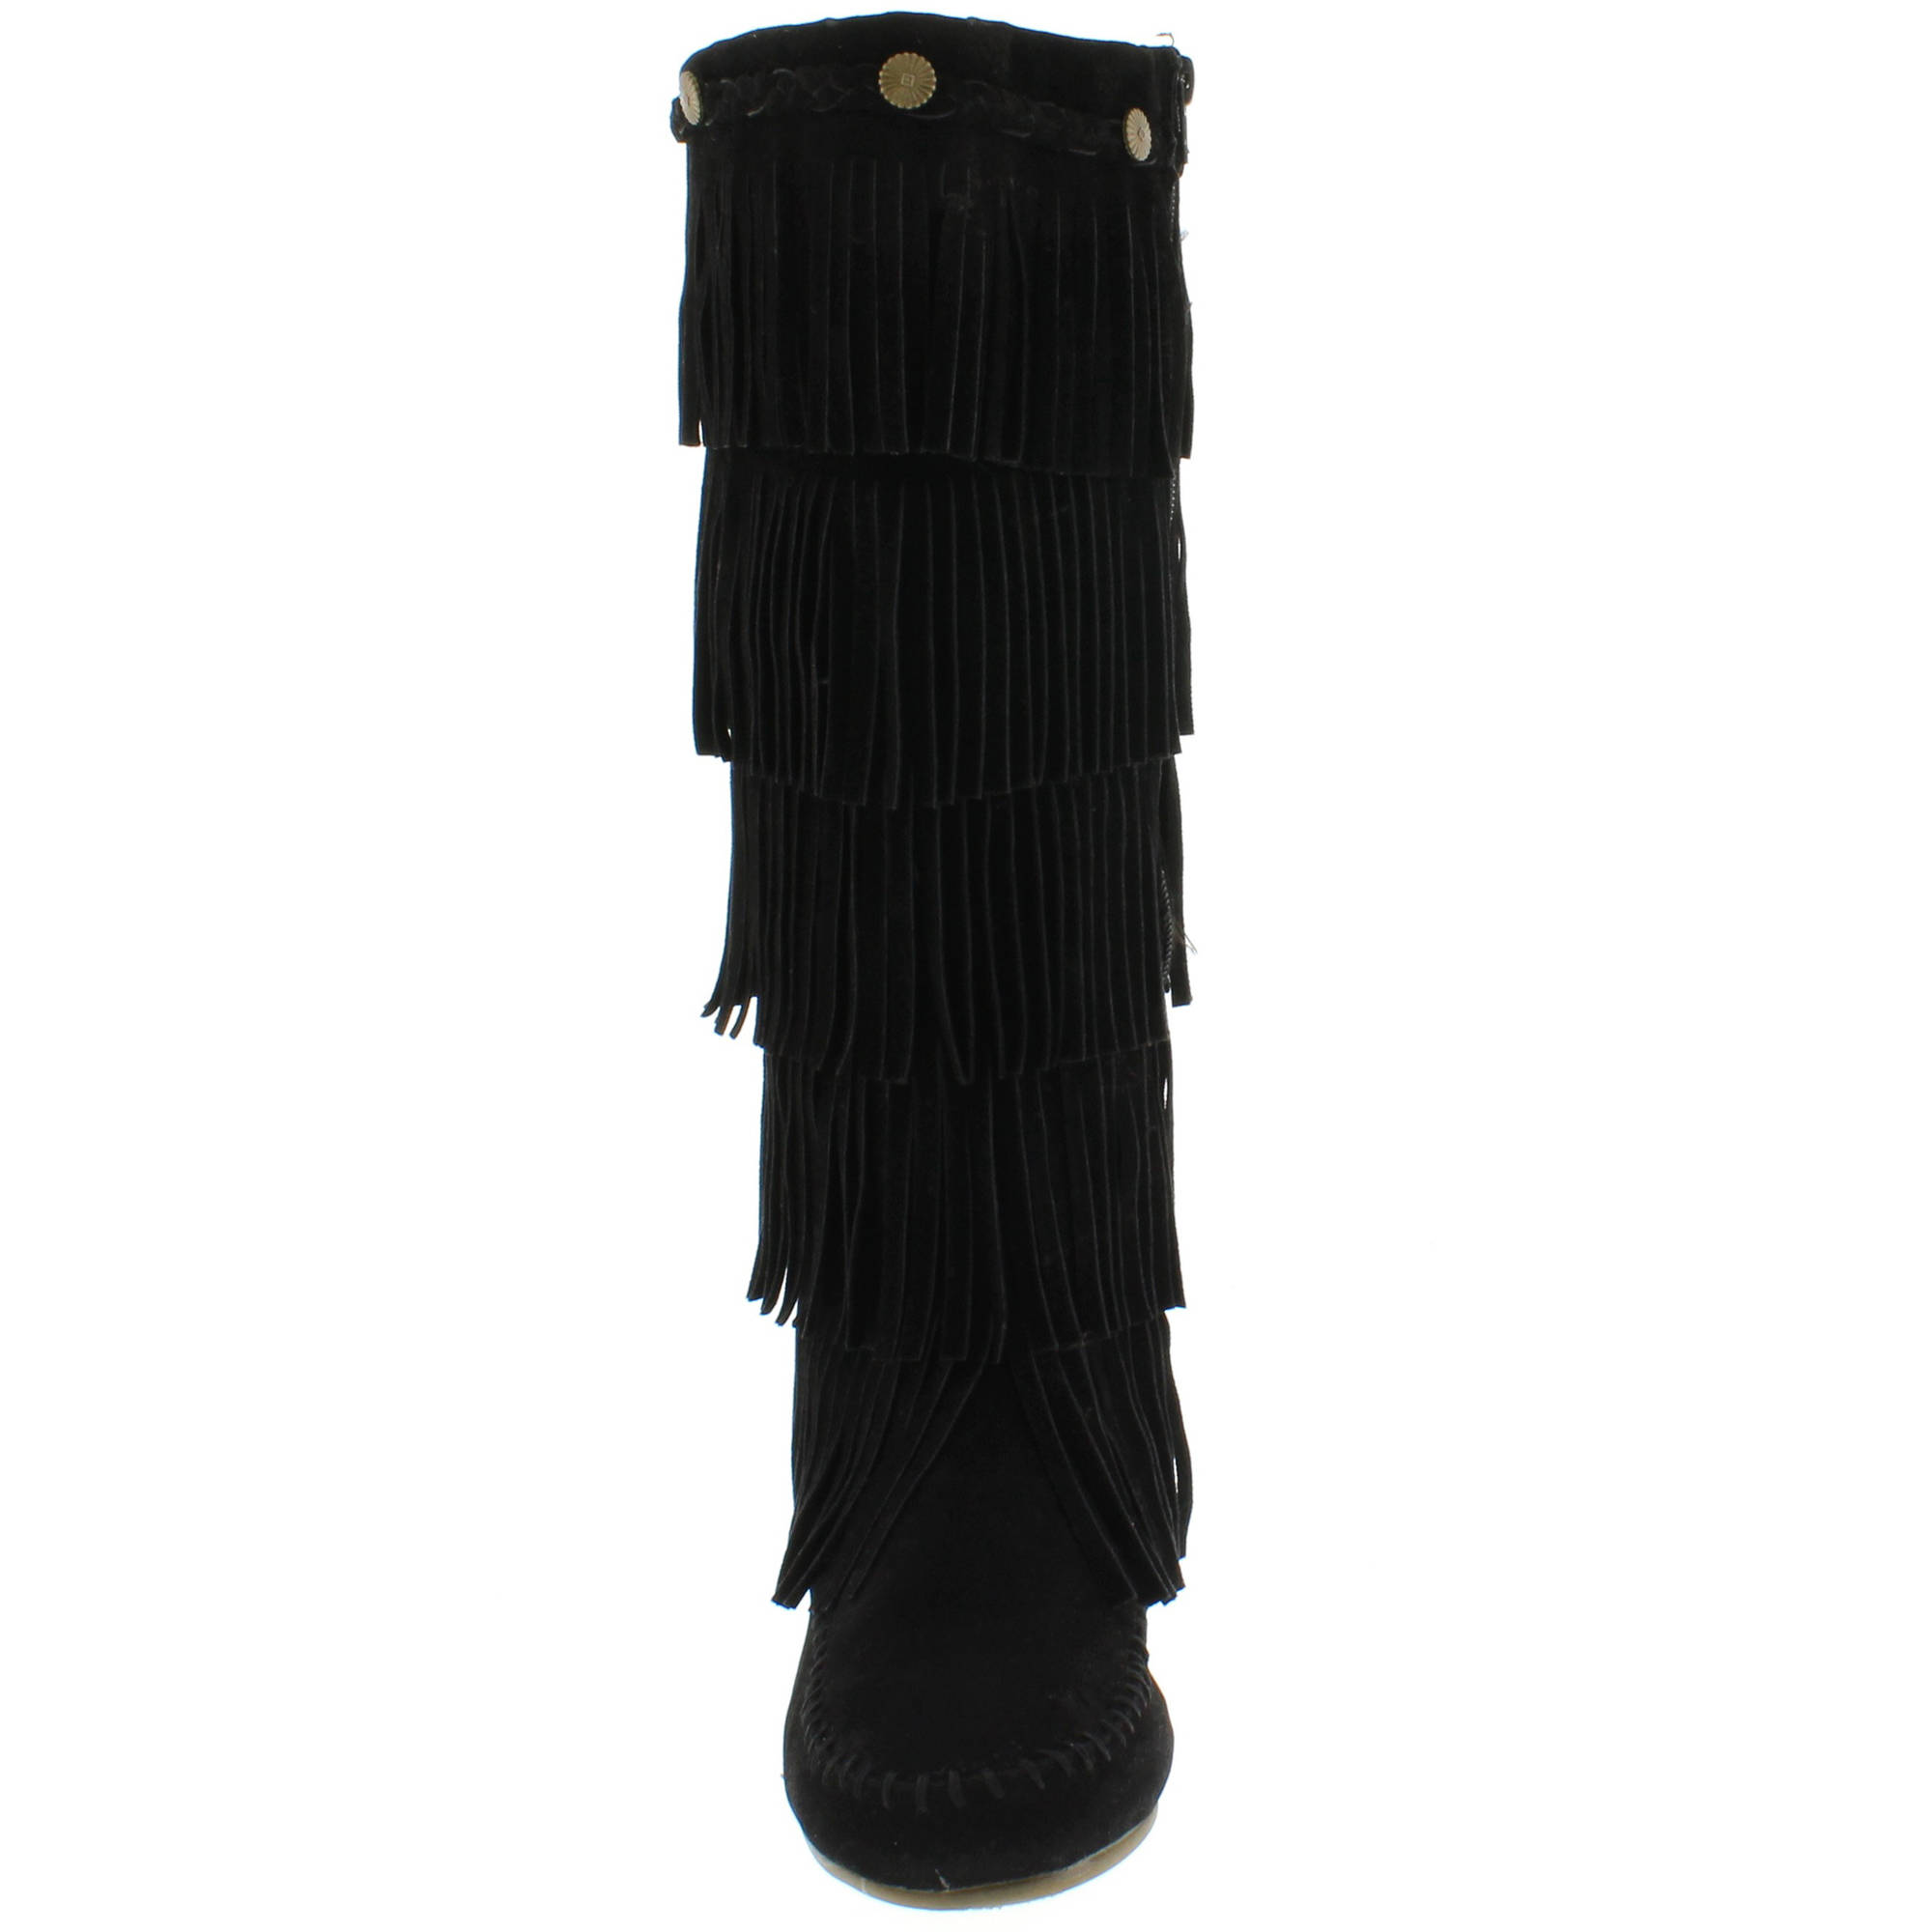 Shoes of Soul Women's Layer Fringe Boots - Walmart.com